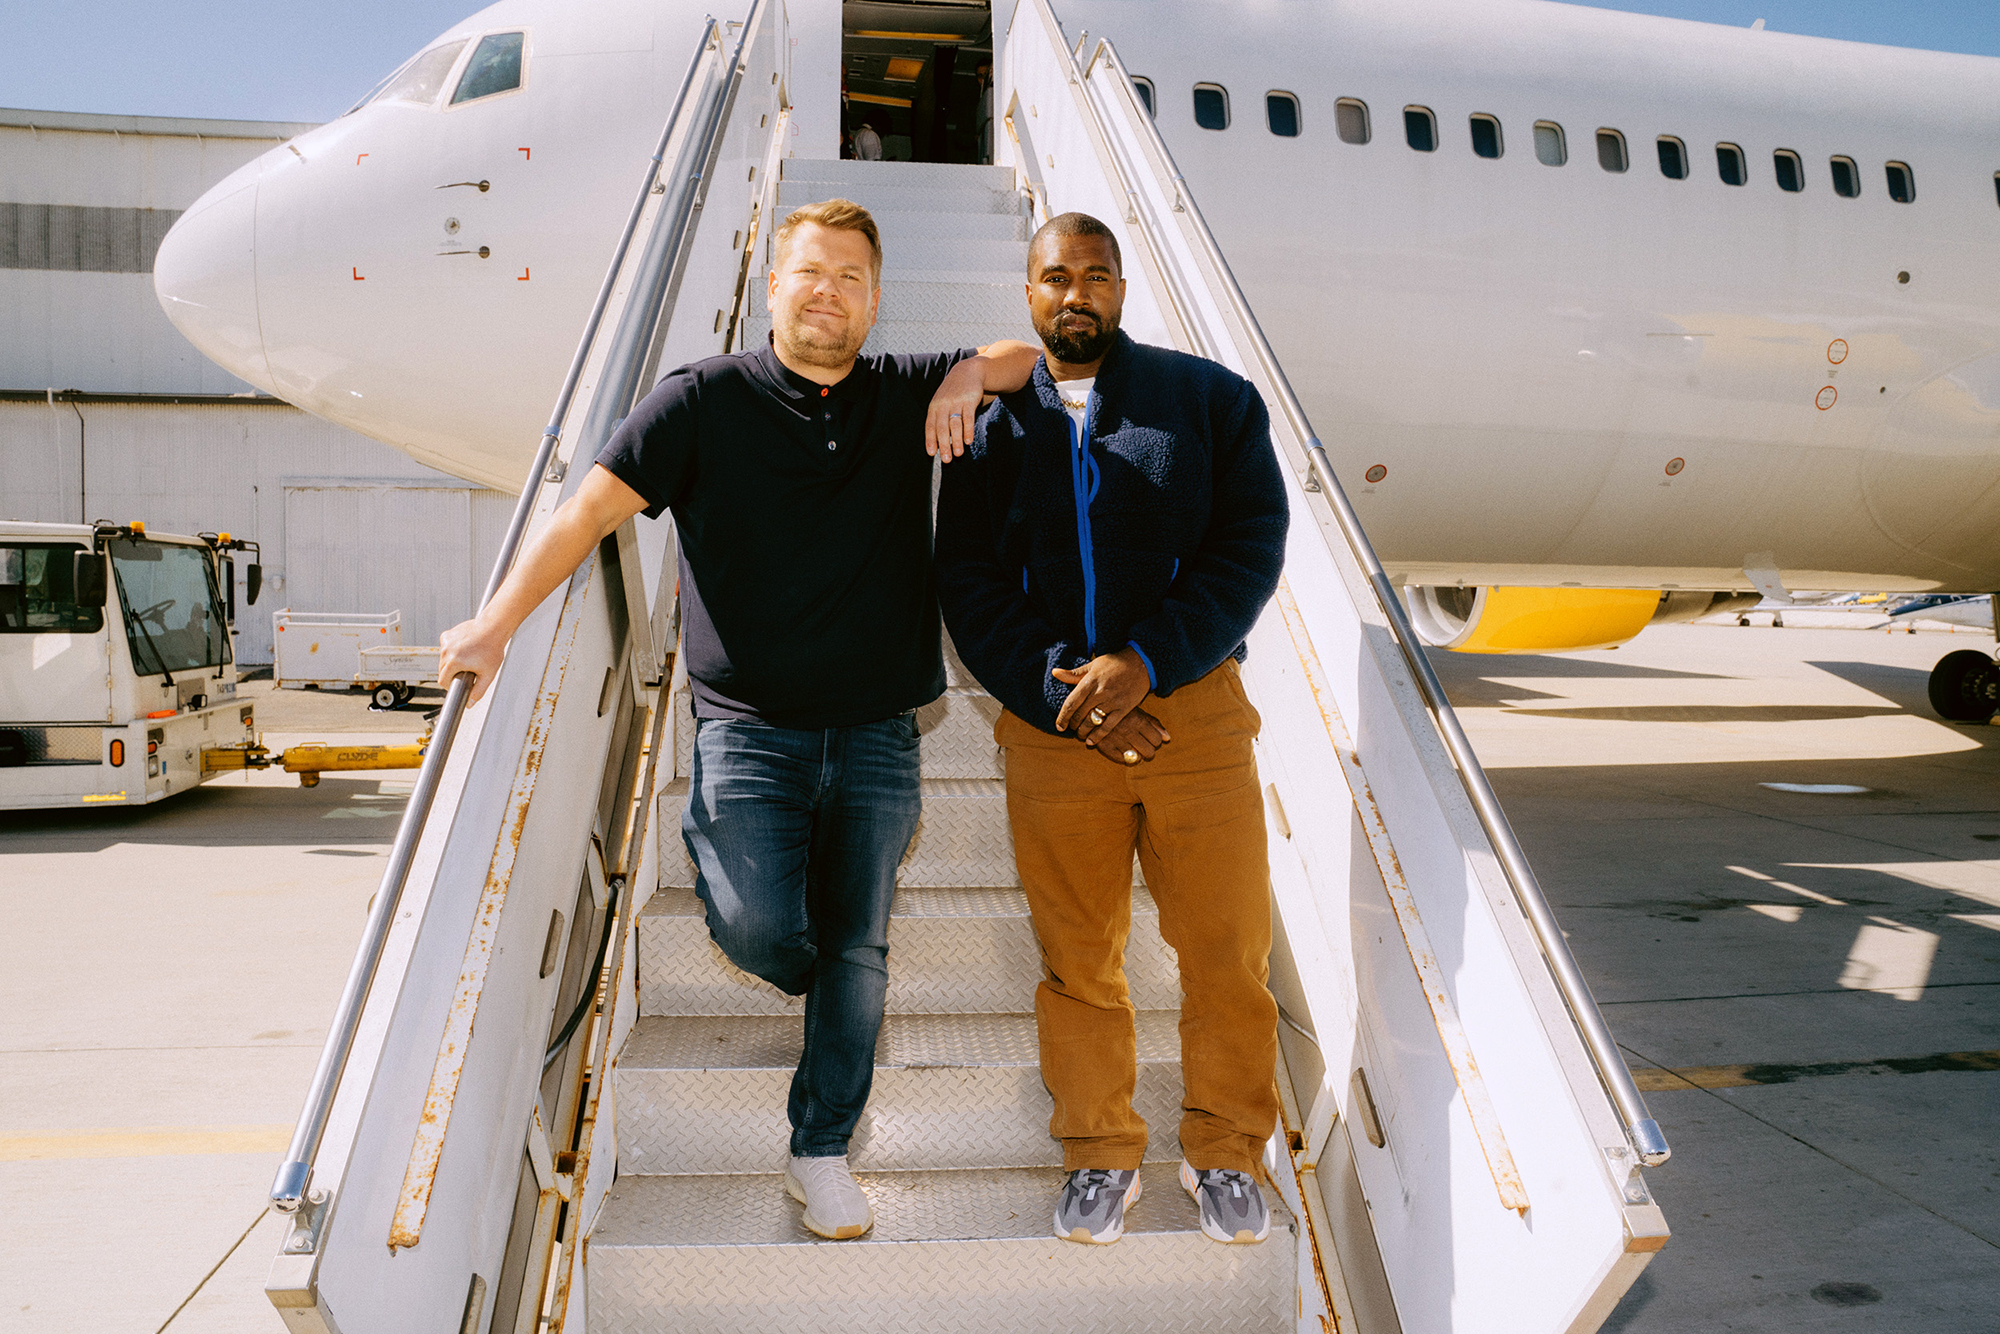 Kanye West and James Corden Carpool Karaoke